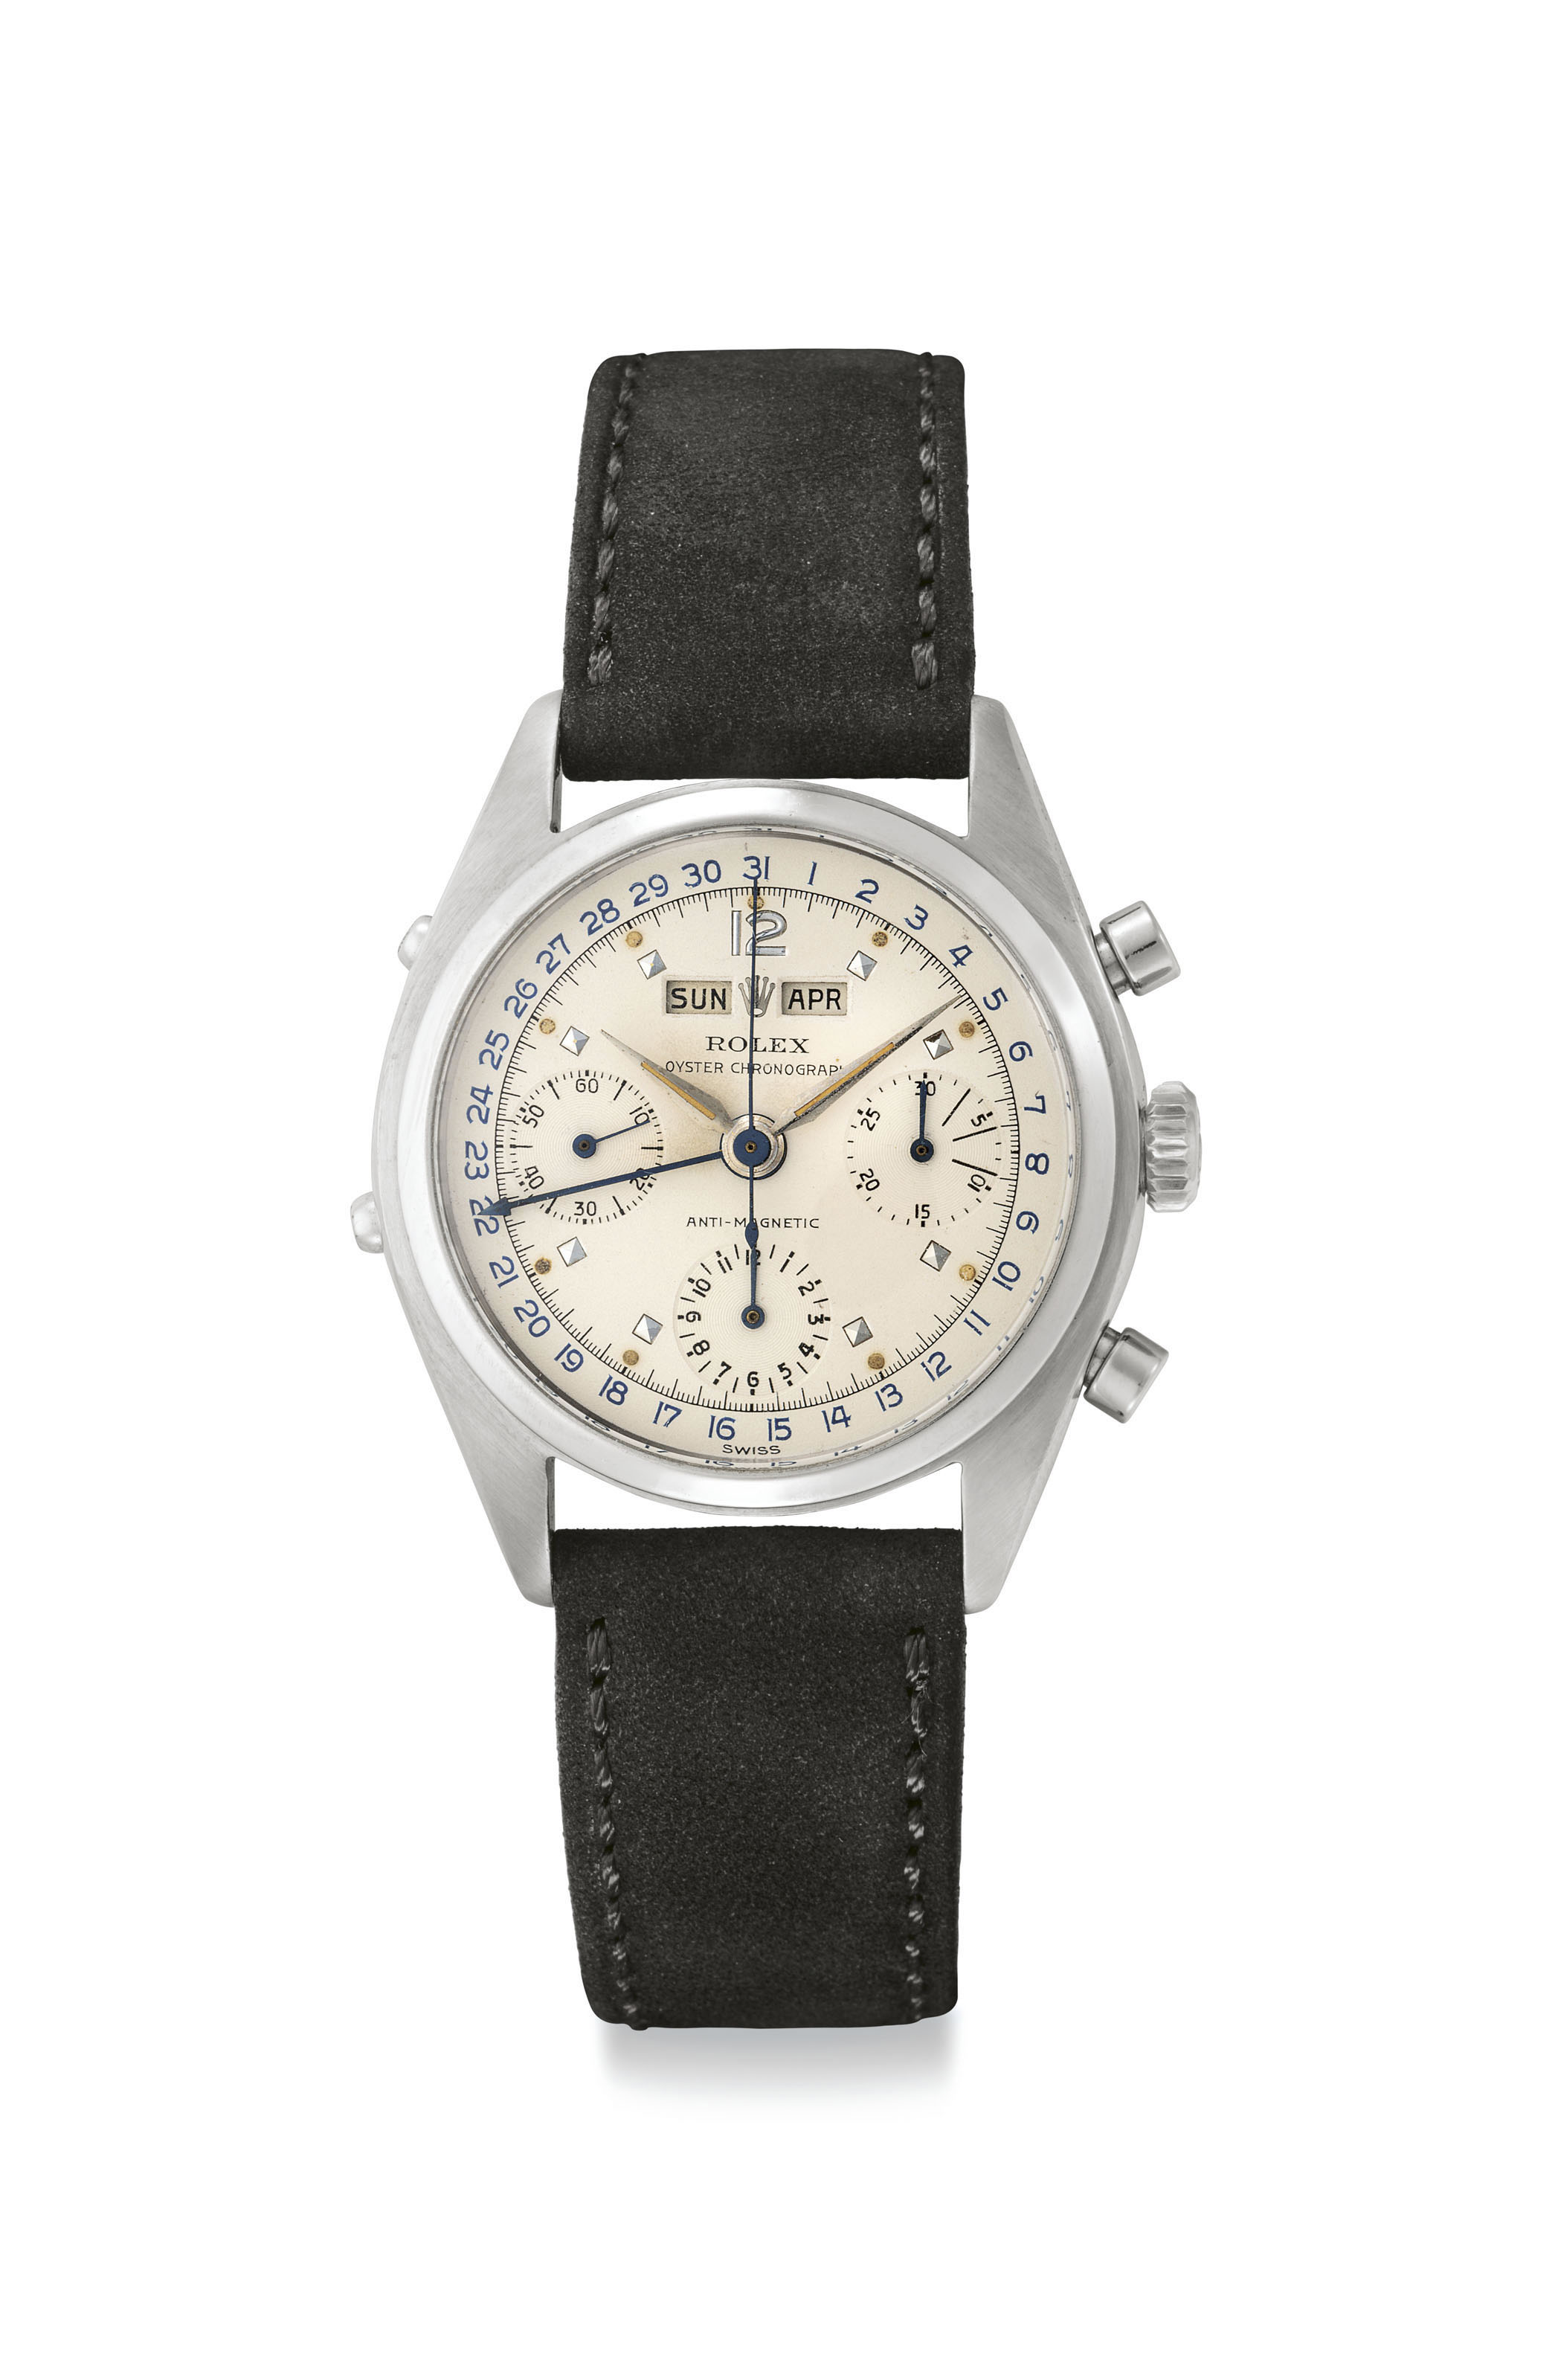 Rolex. A Very Fine and Rare Stainless Steel Triple Calendar Chronograph Wristwatch